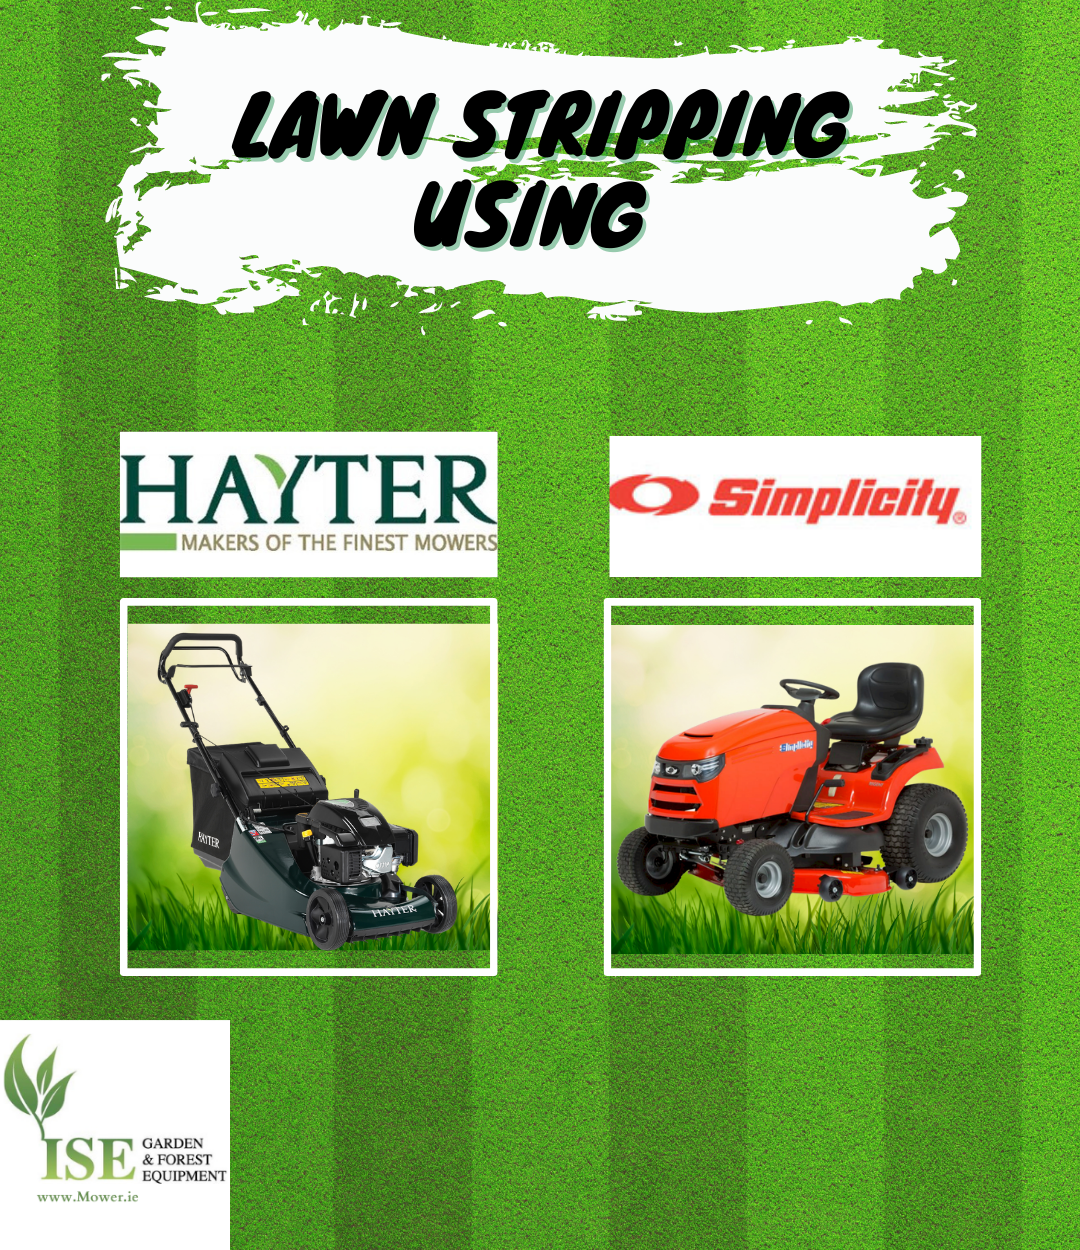 lawn-stripping-using-1-png.png